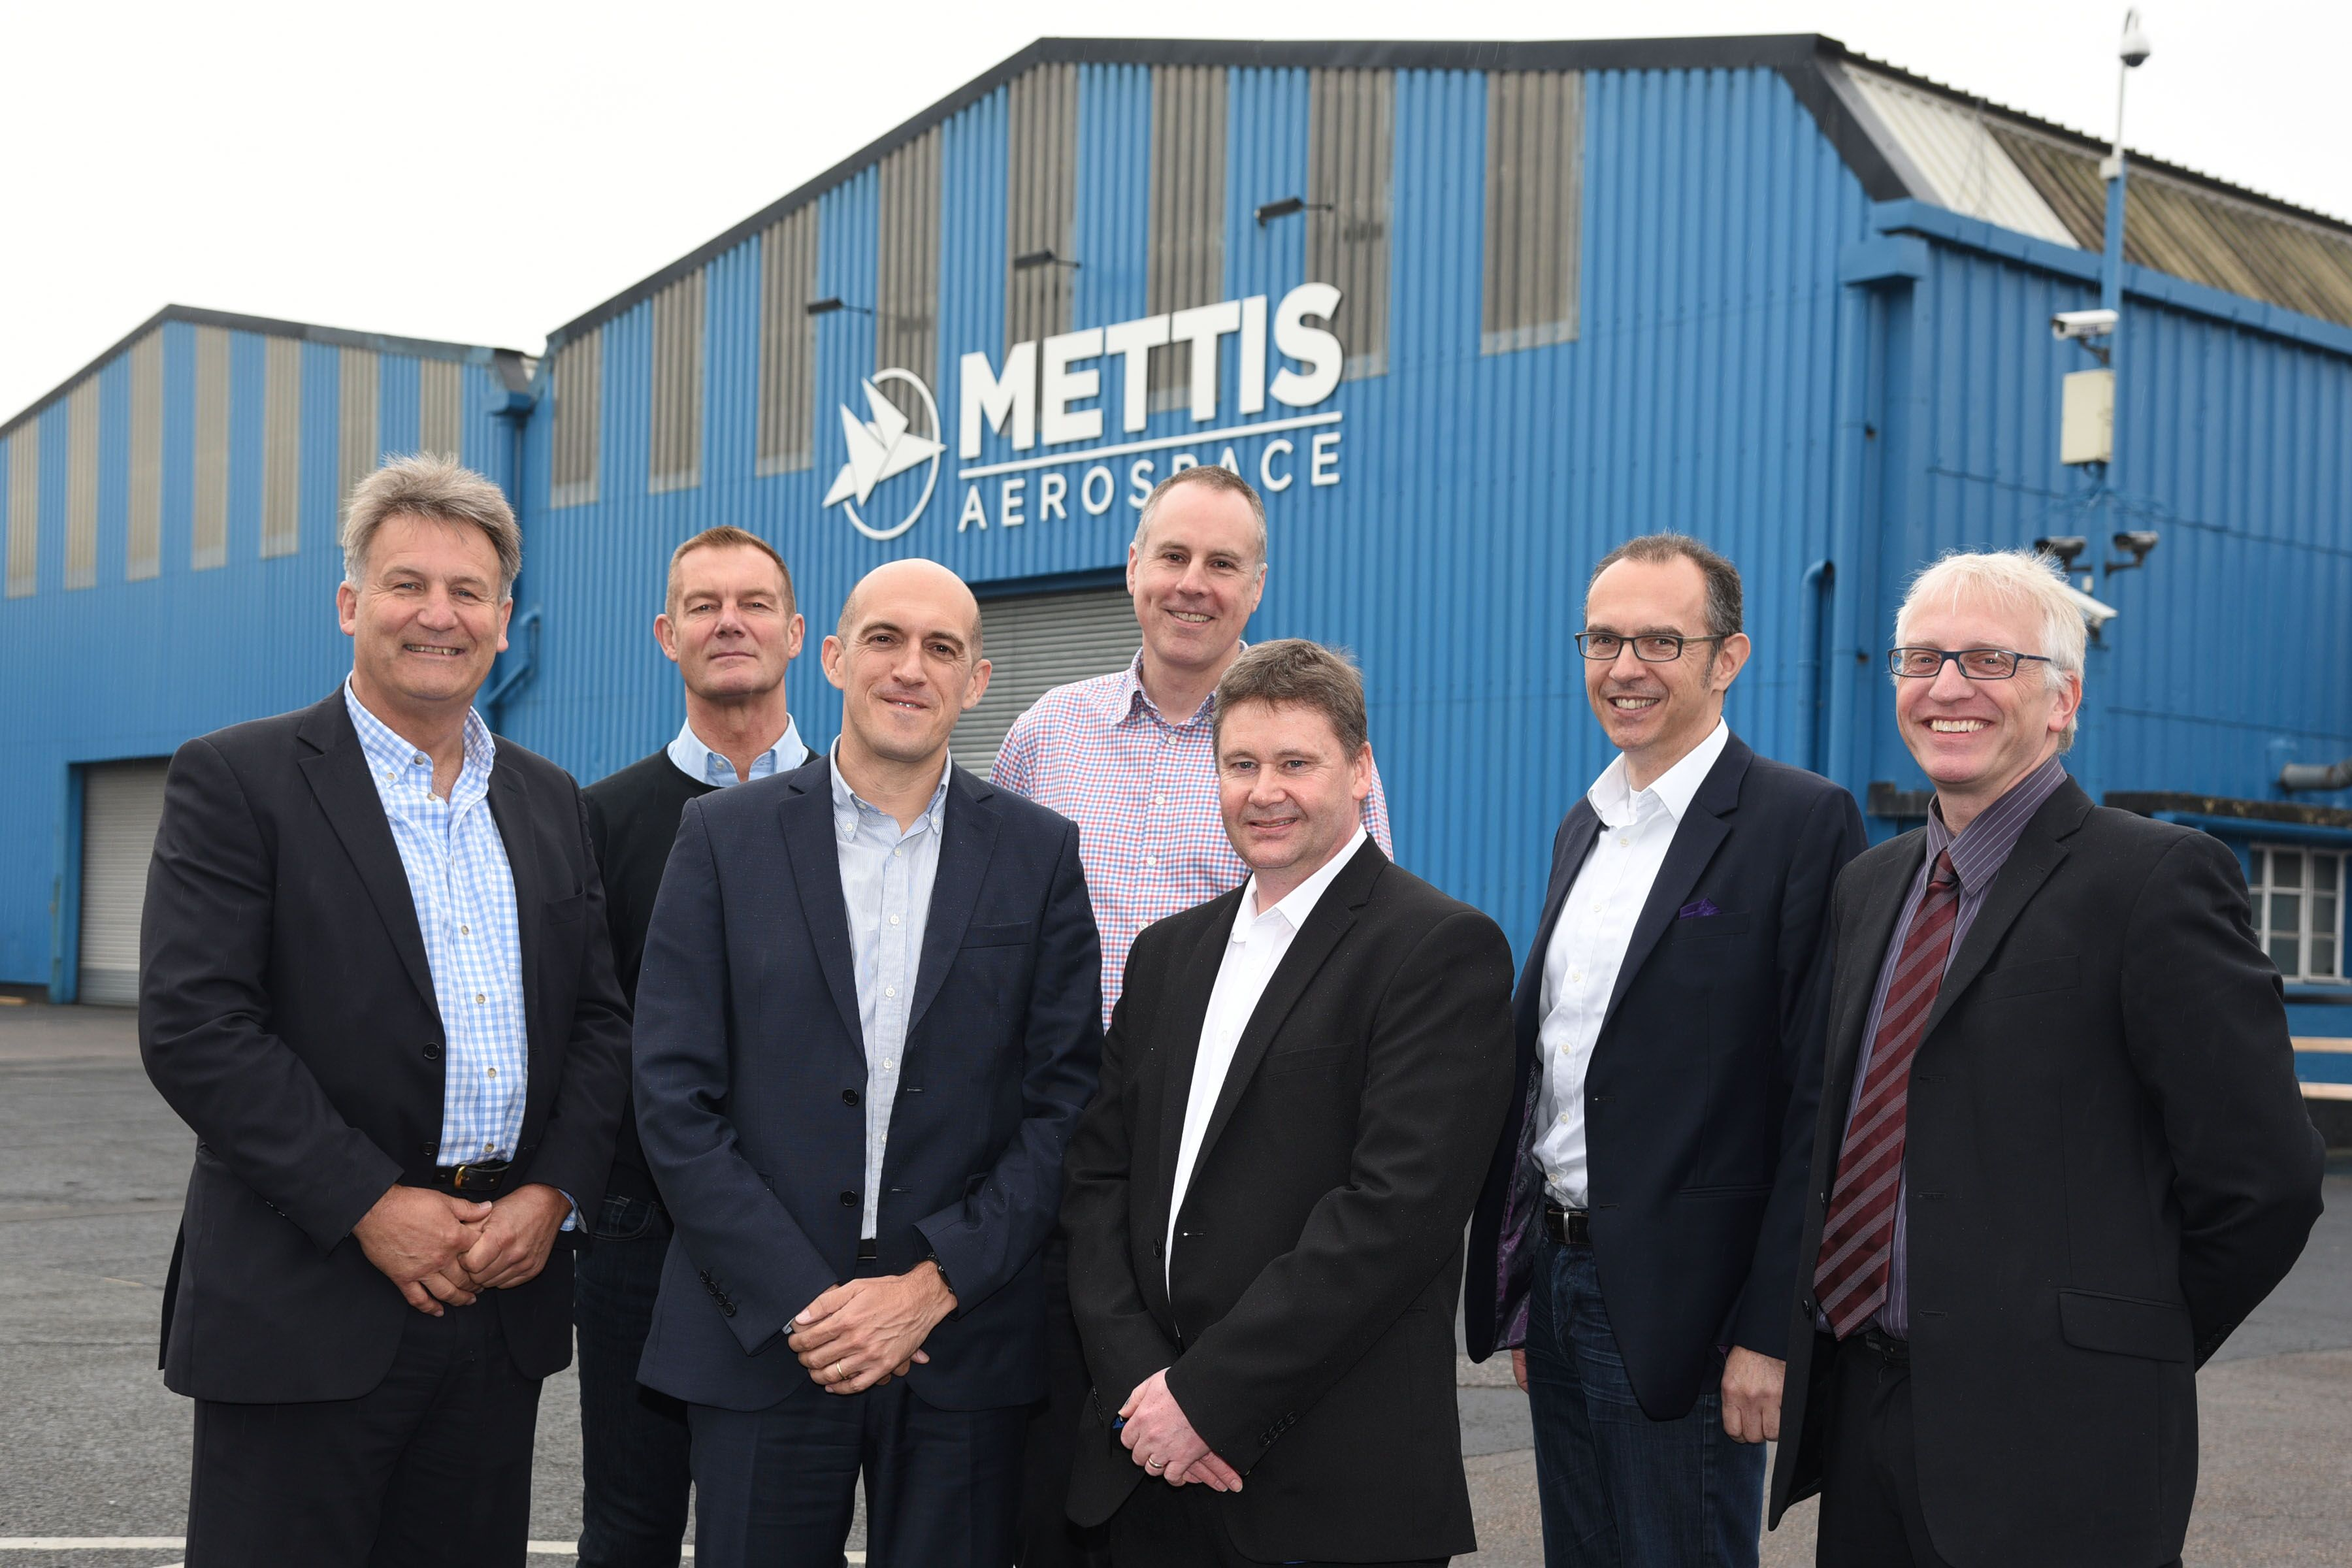 Executives and partners of the Mettis Aerospace's facility in Redditch, UK.